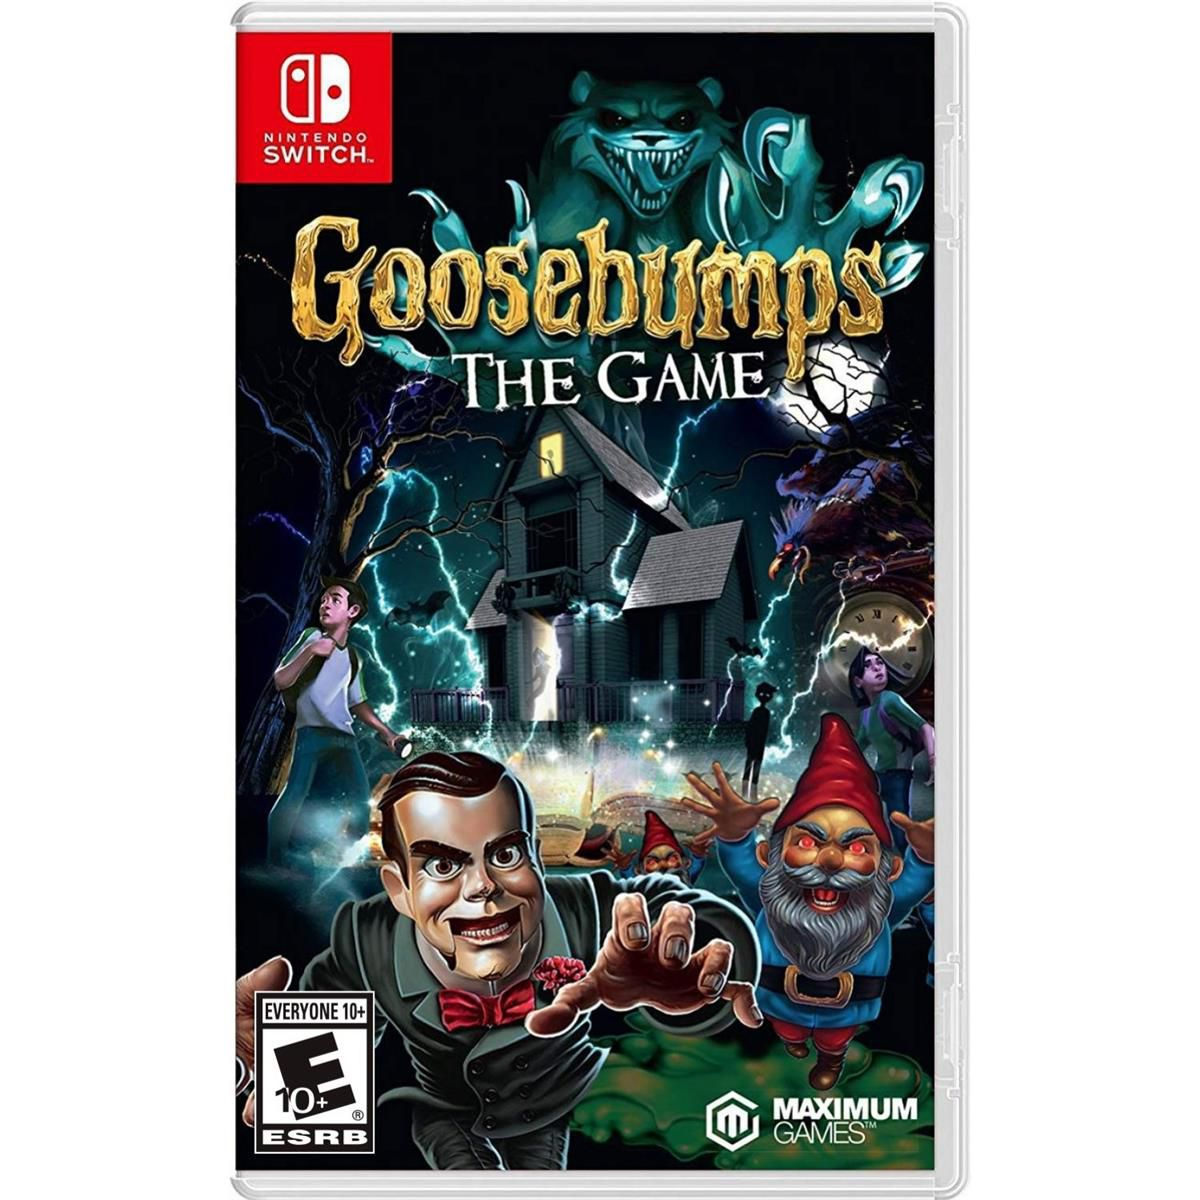 Goosebumps The Game - Nintendo Switch